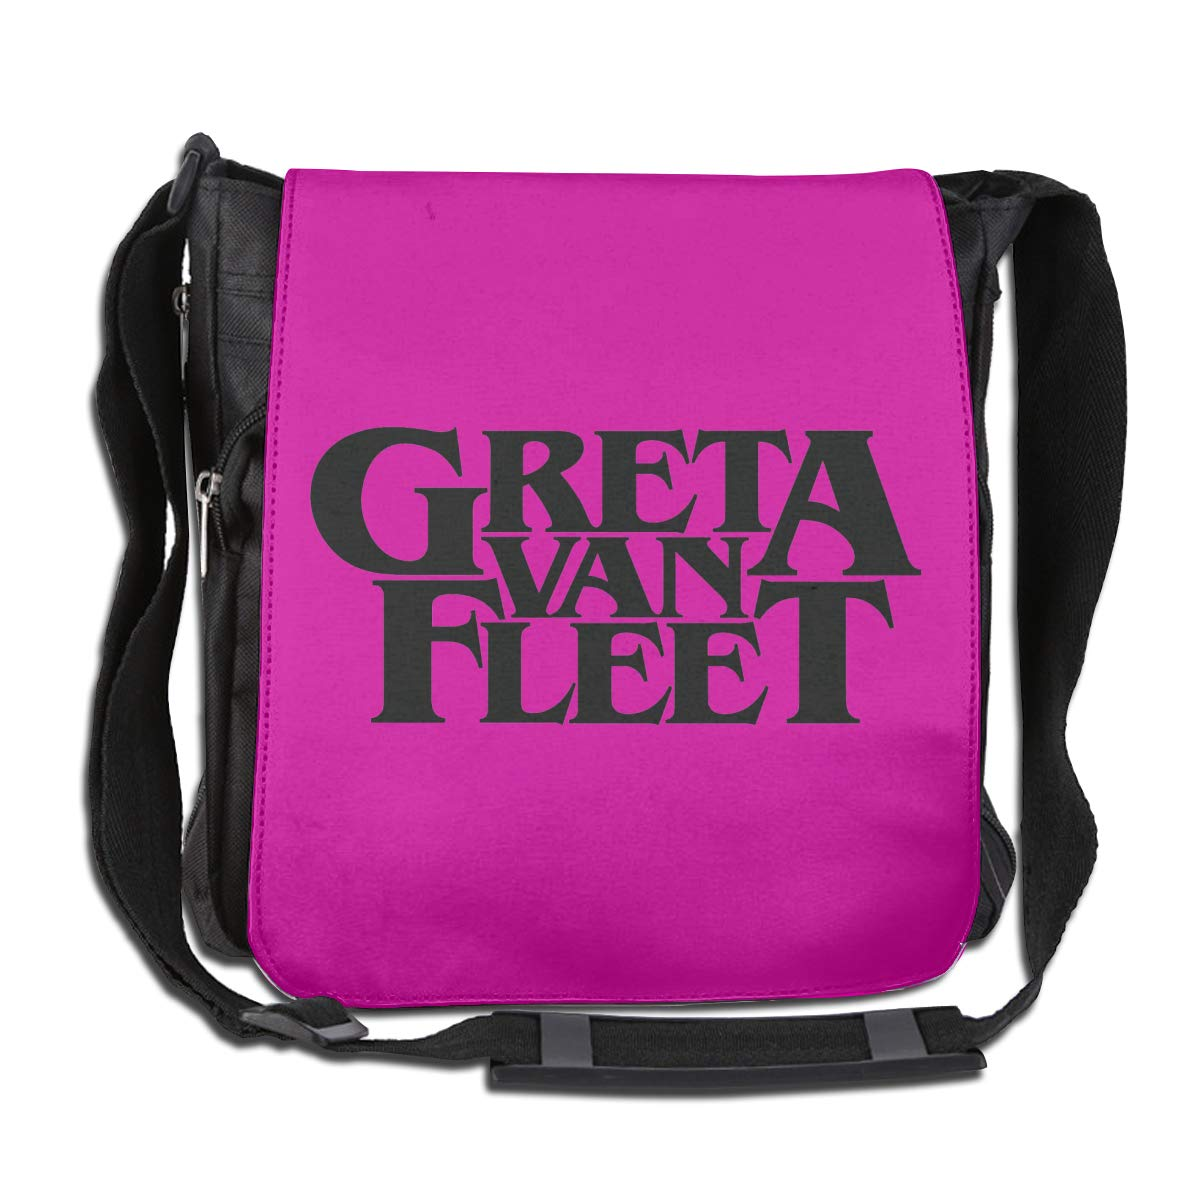 Greta Van Fleet Shoulder Bag For All-Purpose Use Messenger Bag